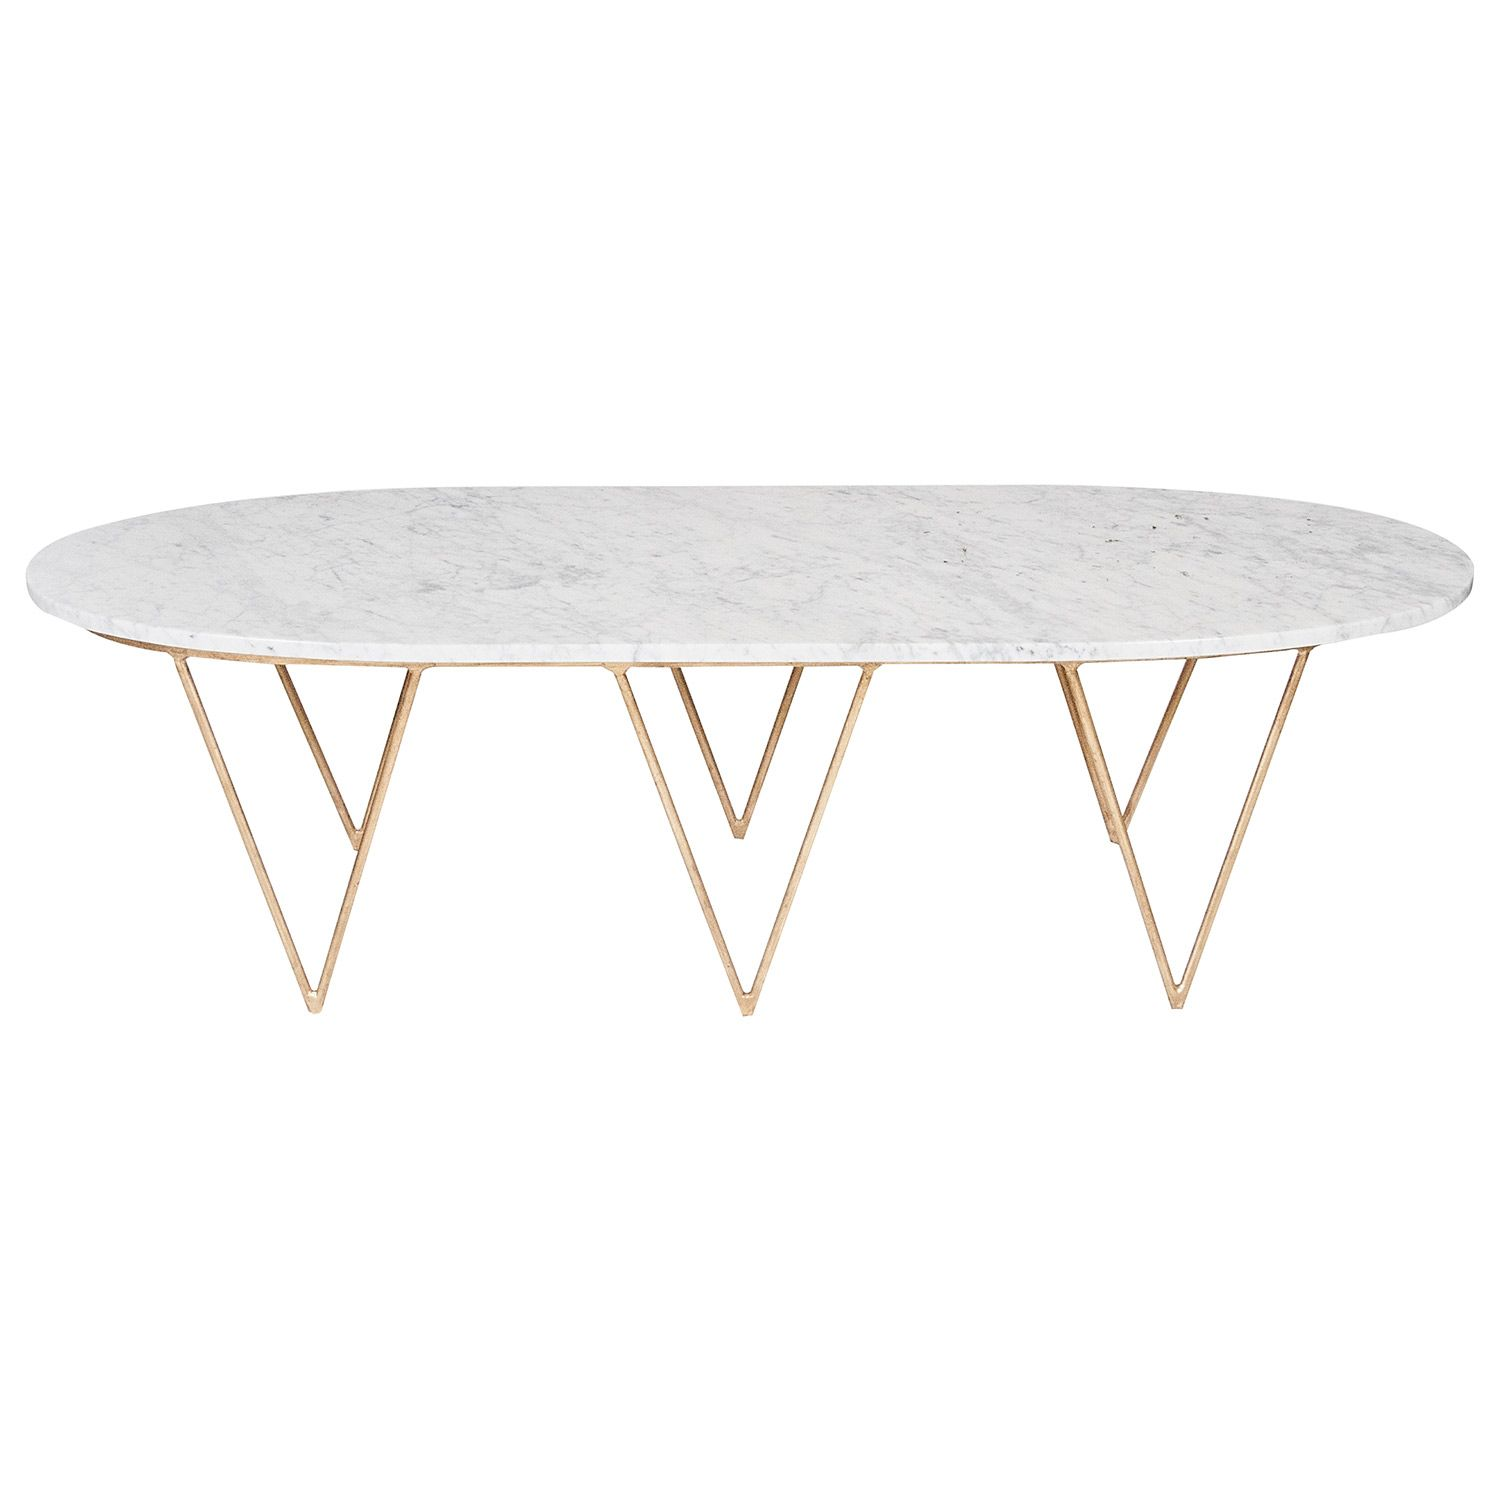 Worlds Away Surf Gold Leafed Coffee Table White Marble Top Wasurfgw Gold Coffee Table Marble Top Coffee Table Coffee Table [ 1500 x 1500 Pixel ]